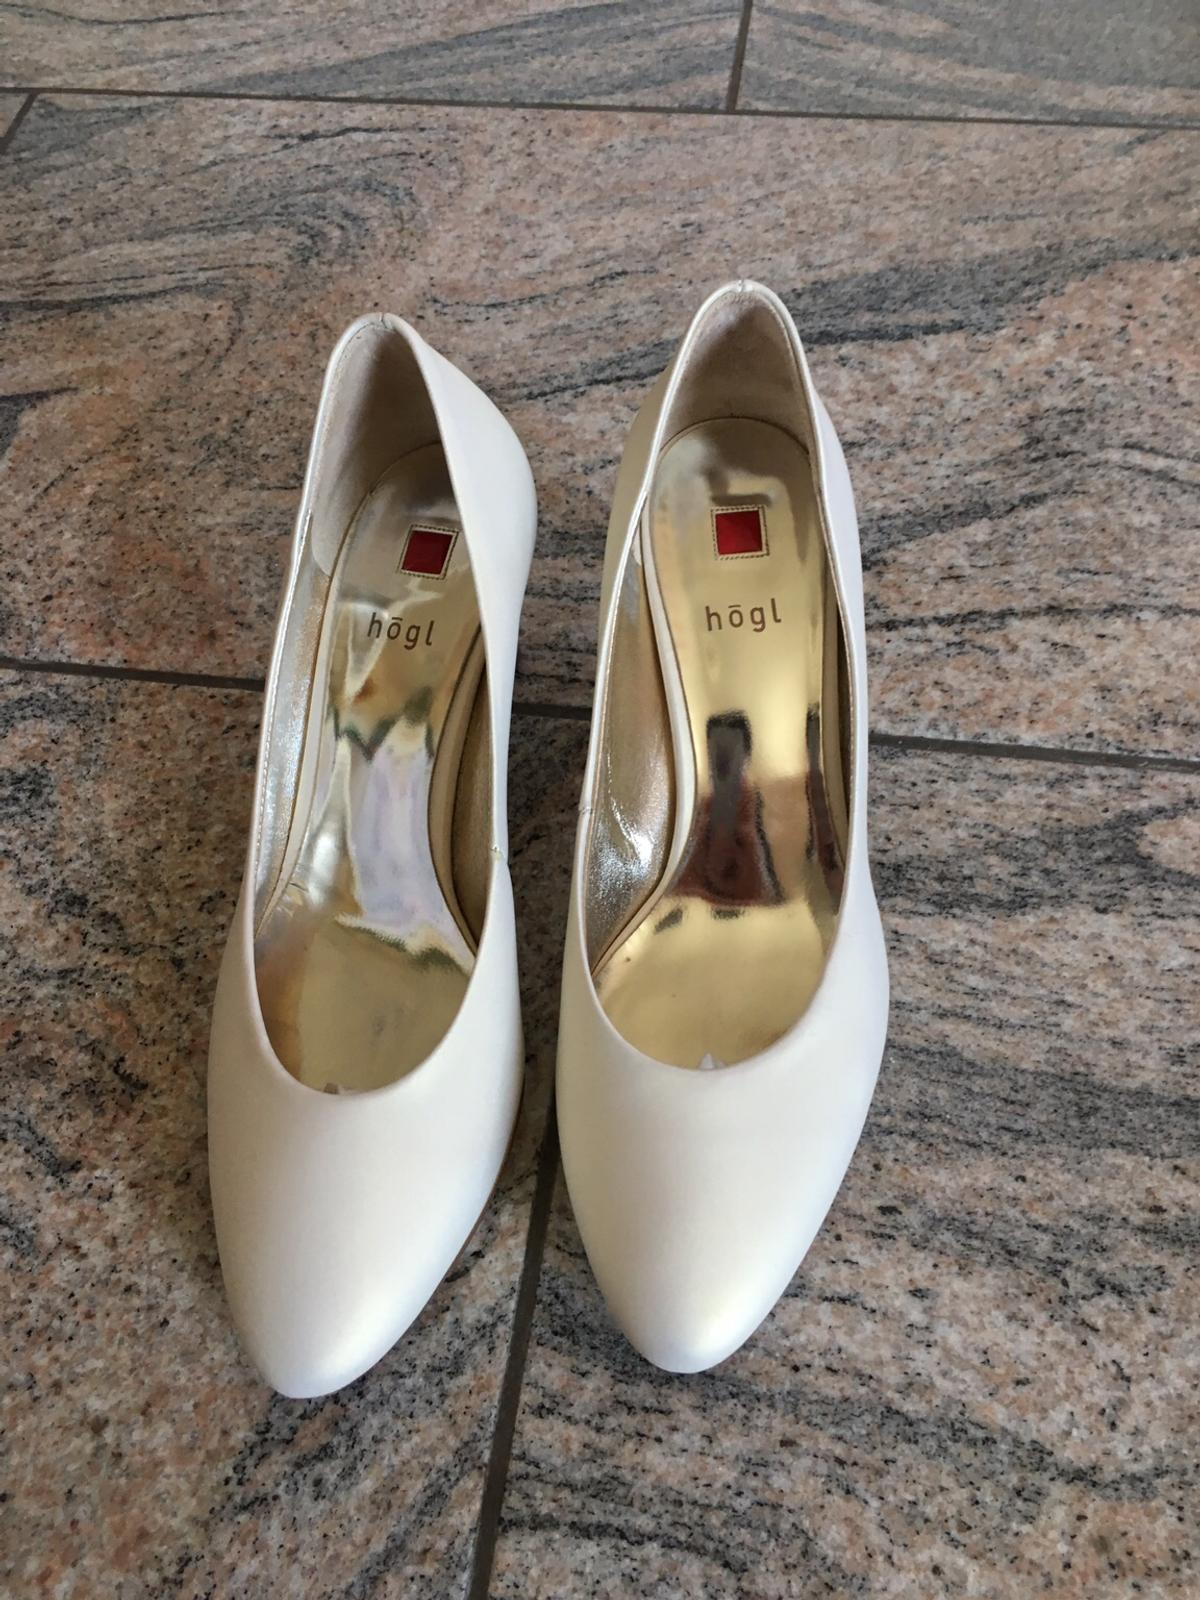 buy popular 5f847 a16f6 Högl Brautschuh ivory 4 1/2 in 5211 Lengau for €50.00 for ...